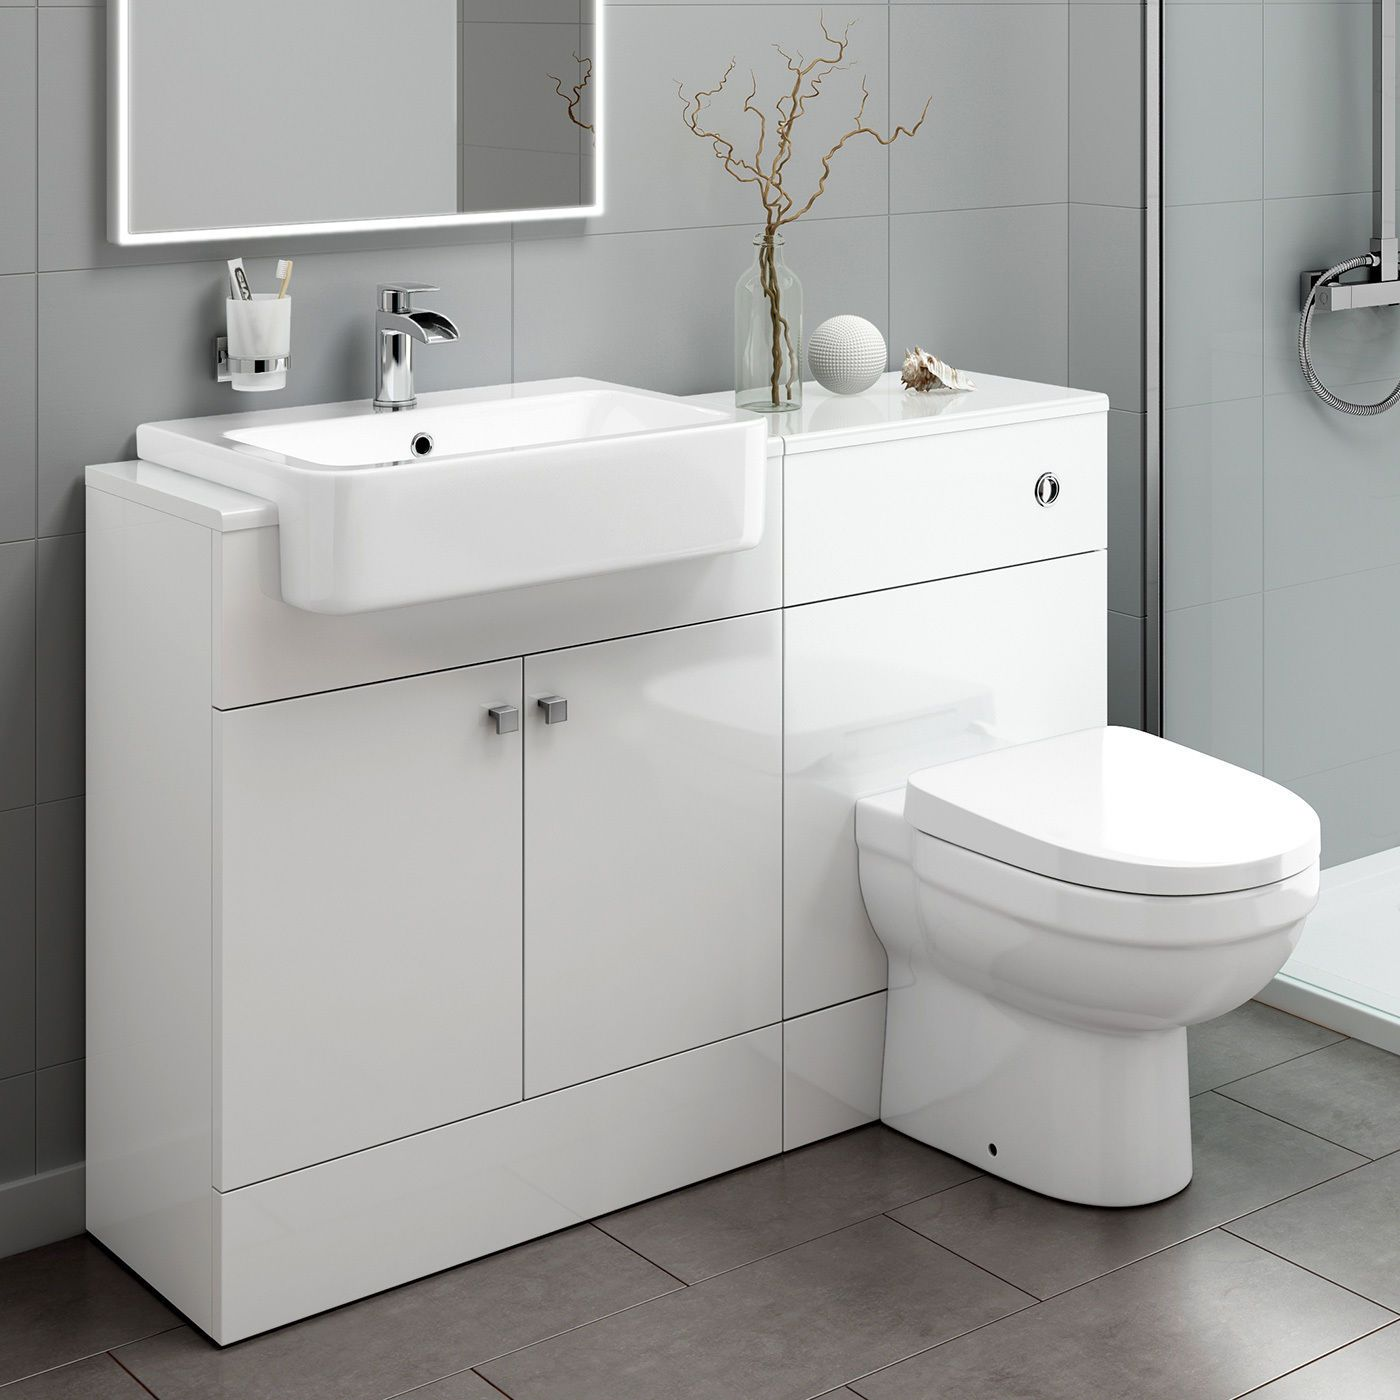 vanity bathroom sink units 1160mm white bathroom vanity unit sink and toilet 21178